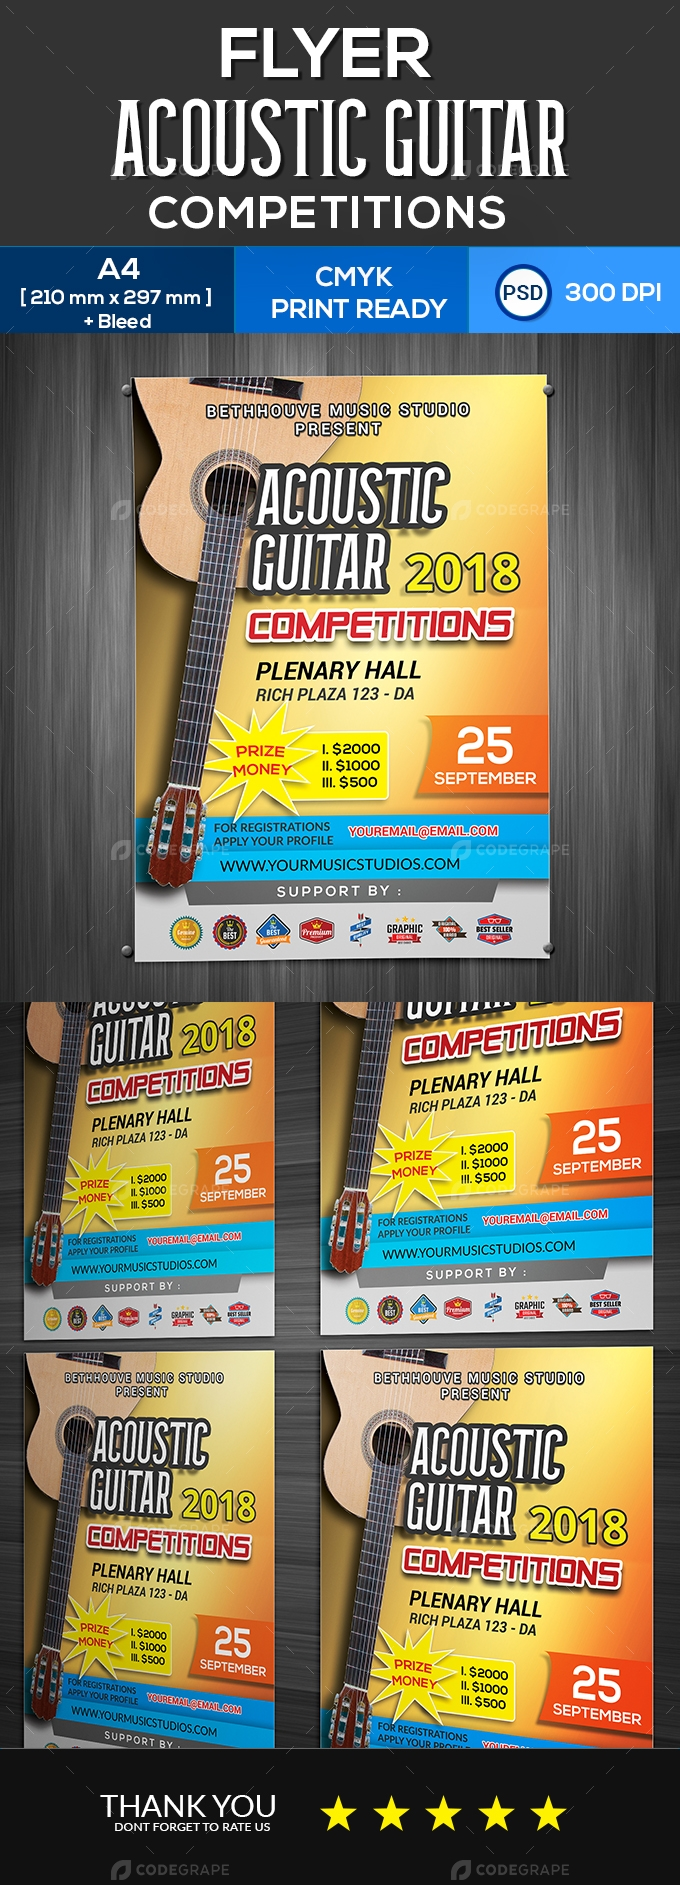 Acoustic Guitar Competitions Flyer